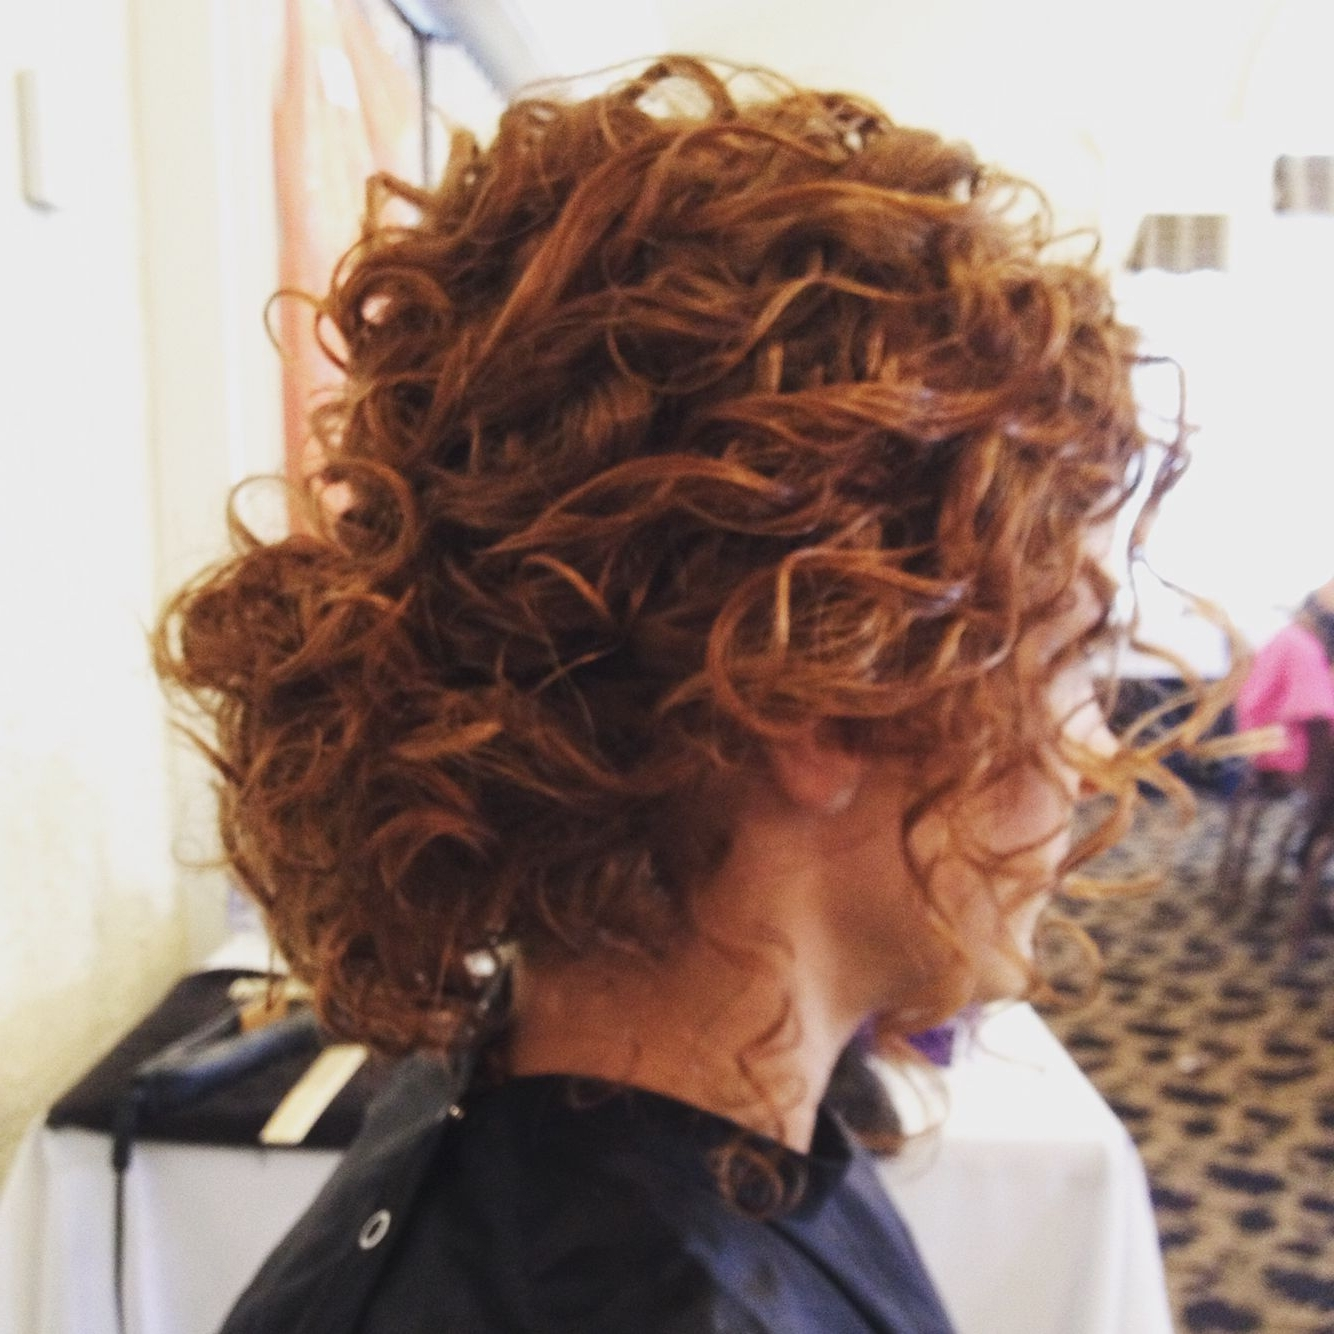 Naturally Curly Hair Low Bun Updo | Hair | Pinterest | Low Bun Updo Intended For Naturally Curly Hair Updo Hairstyles (View 8 of 15)